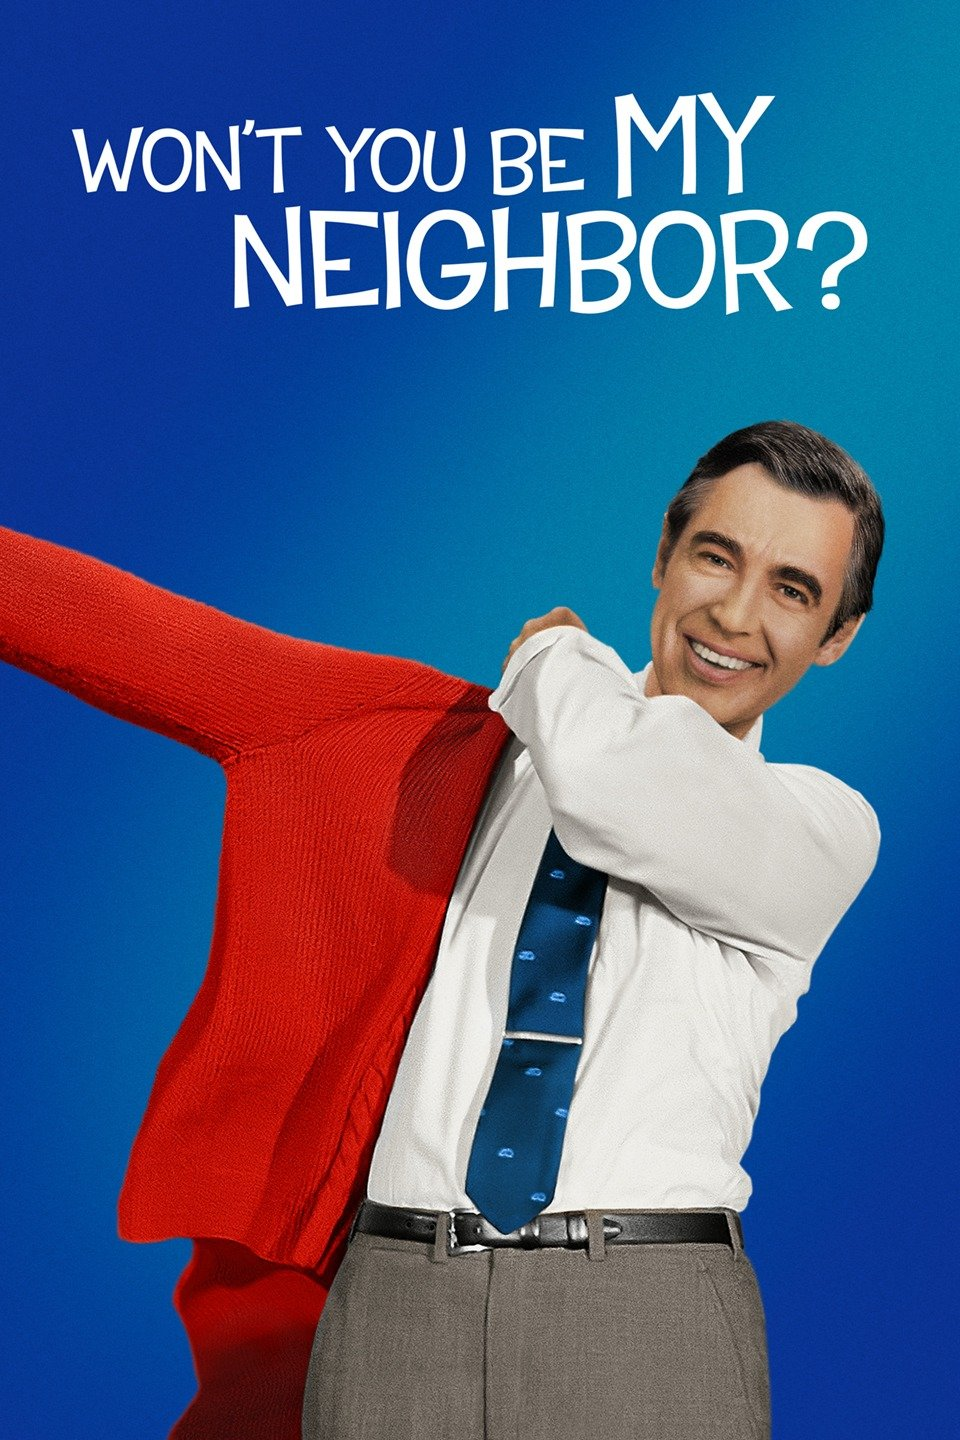 wont you be my neighbor poster.jpg